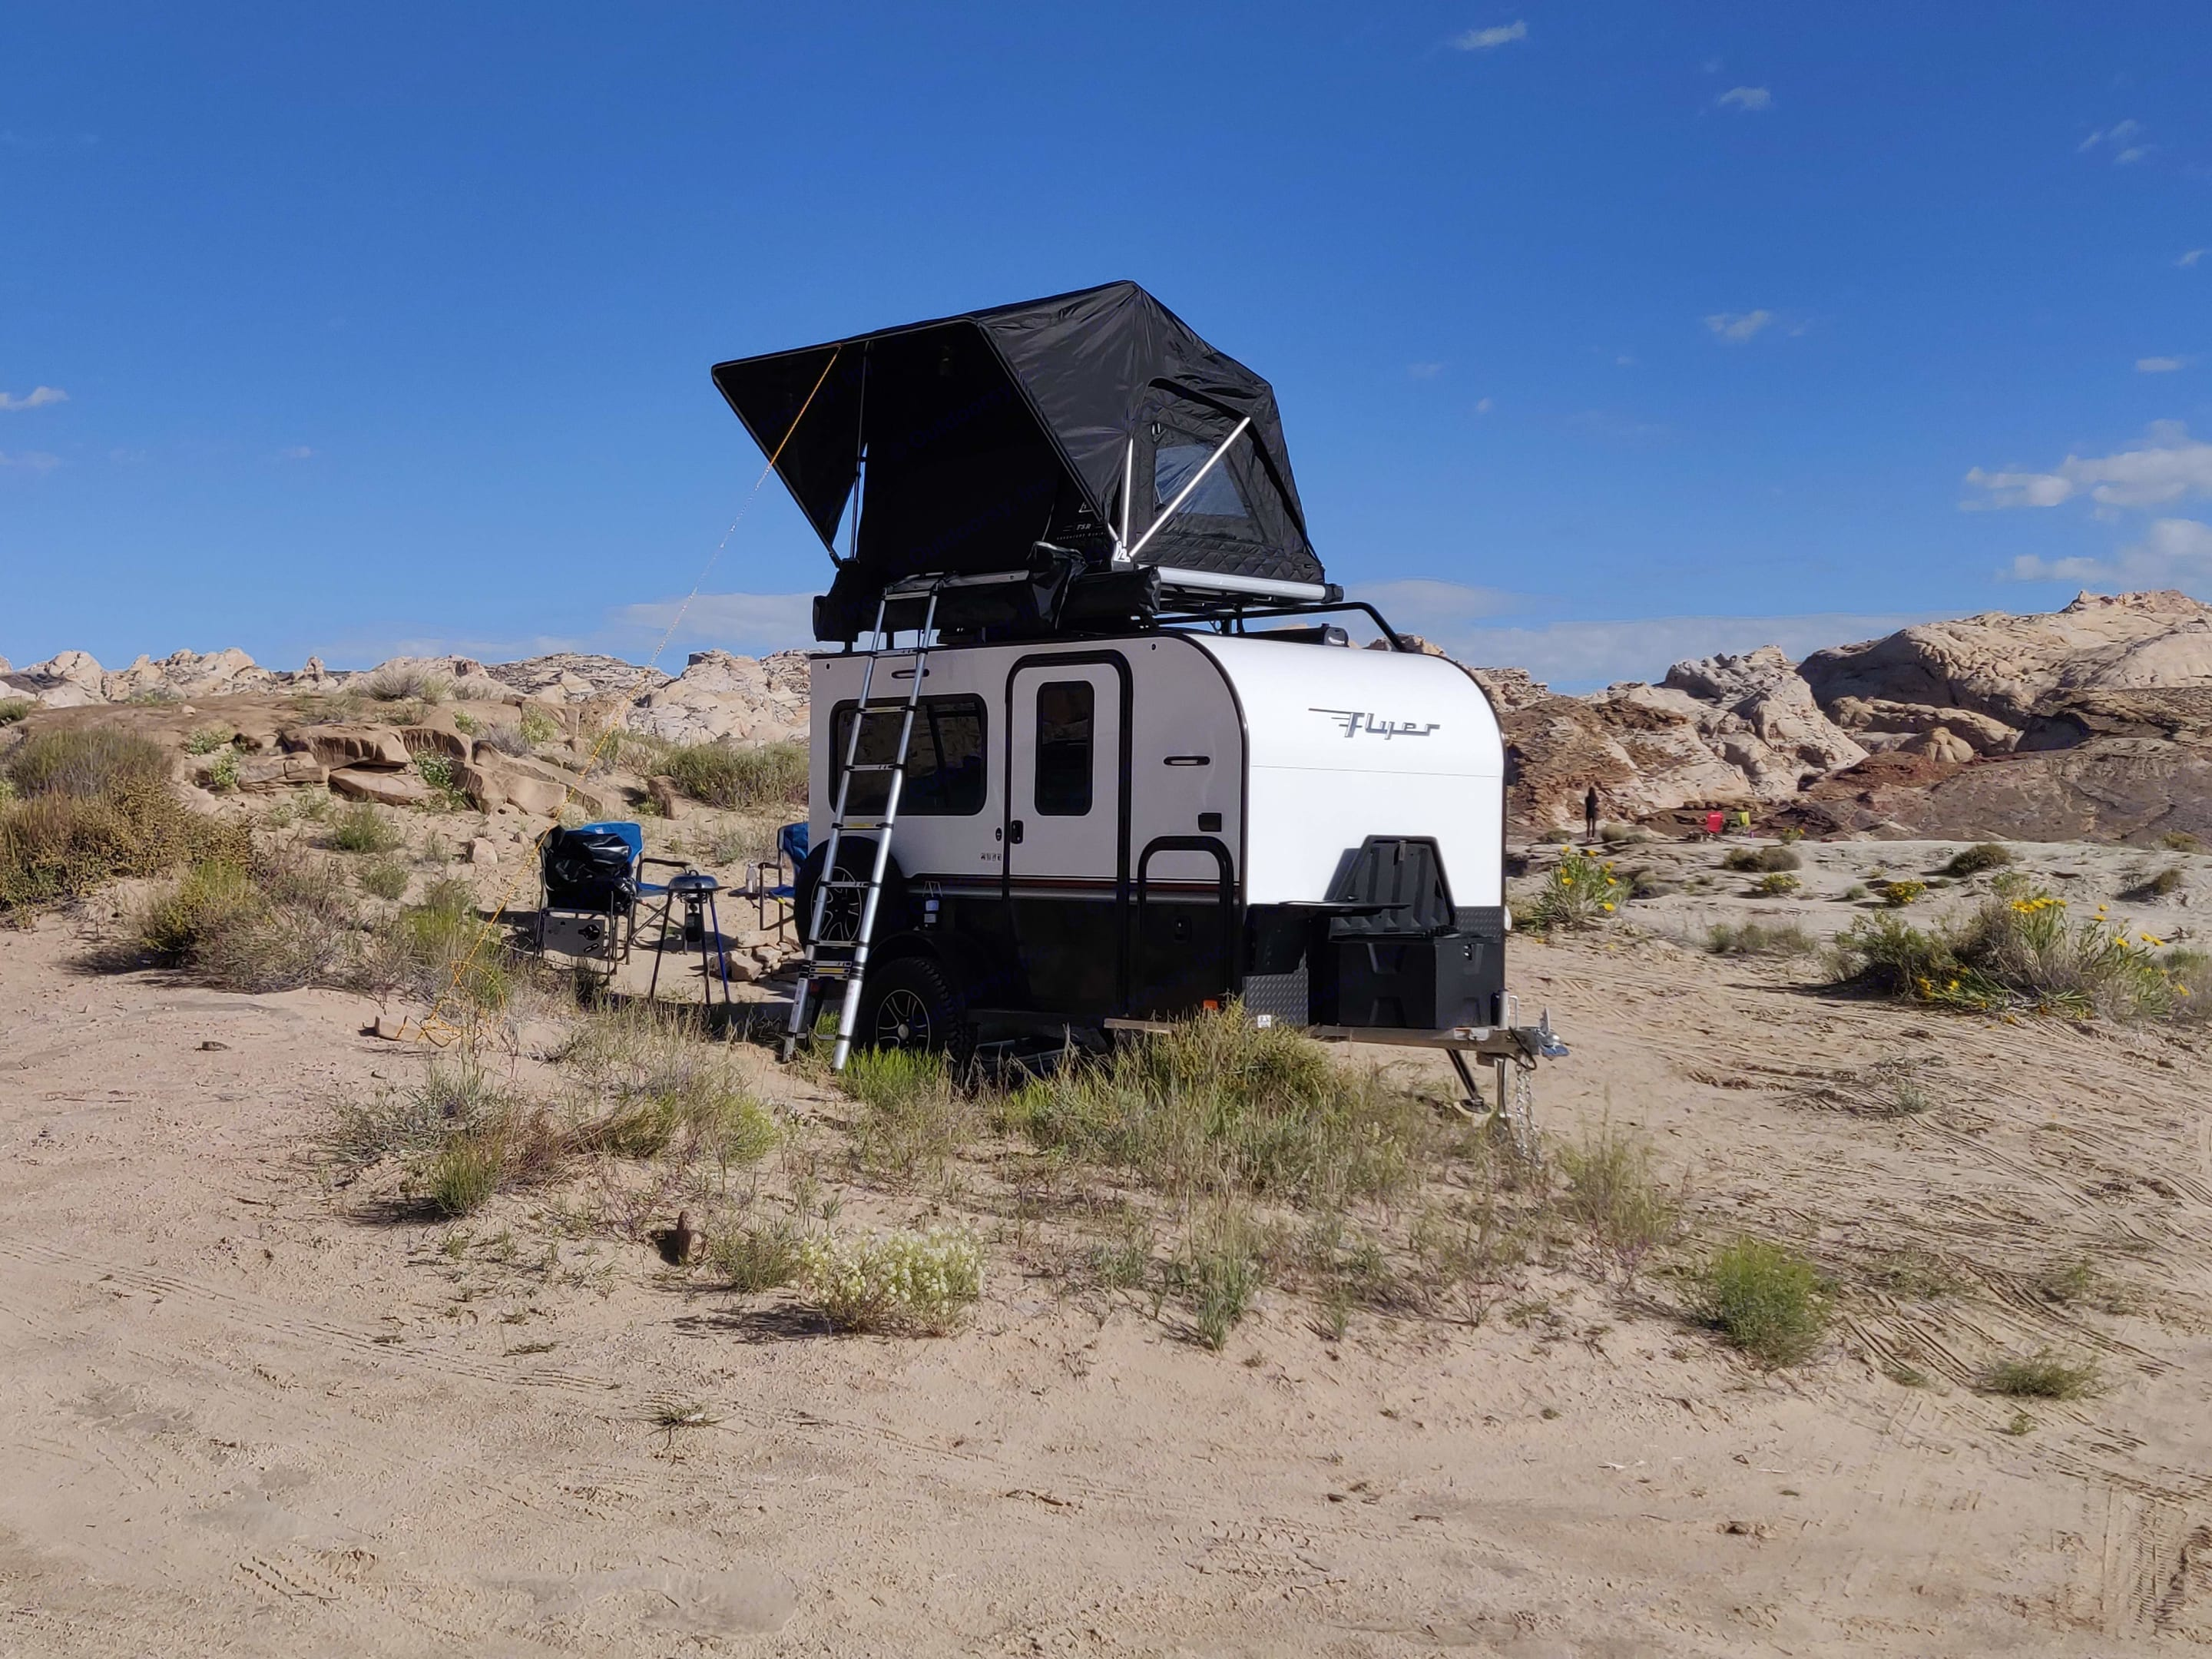 Camping in style in Goblin Valley. Intech Explore 2019